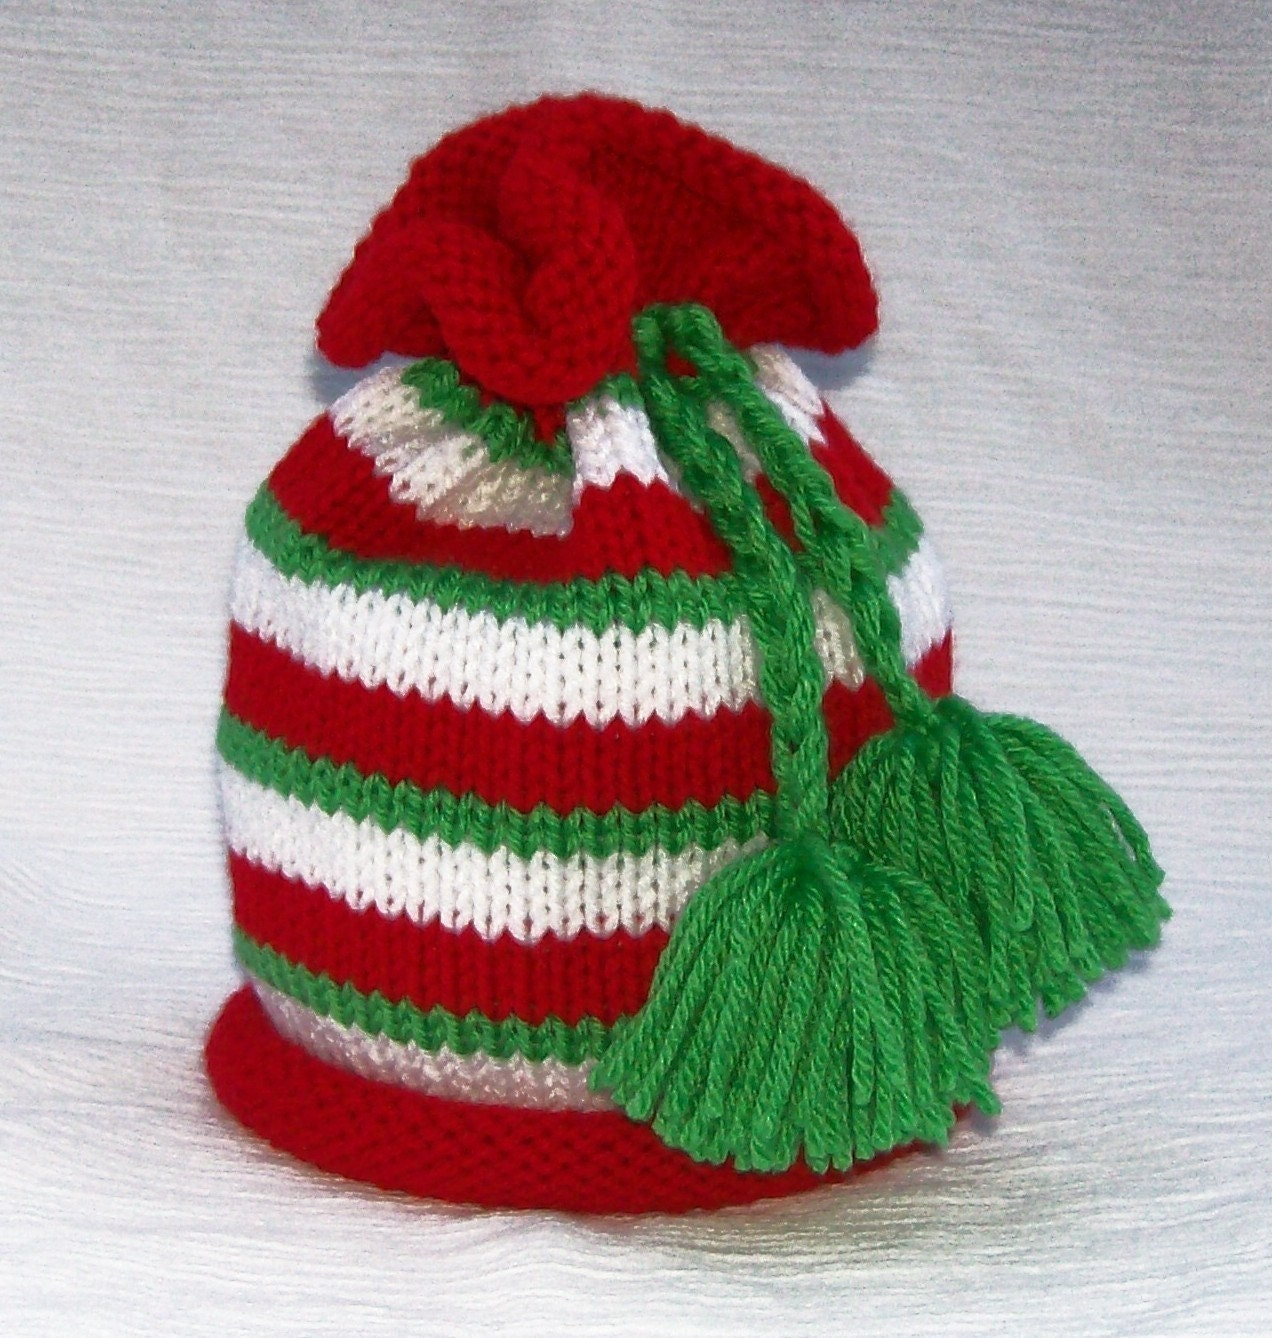 Santas Little Helper Striped Elf Hat with Green Pom Poms Great Photography Prop sized to fit Newborn Infants and Babies